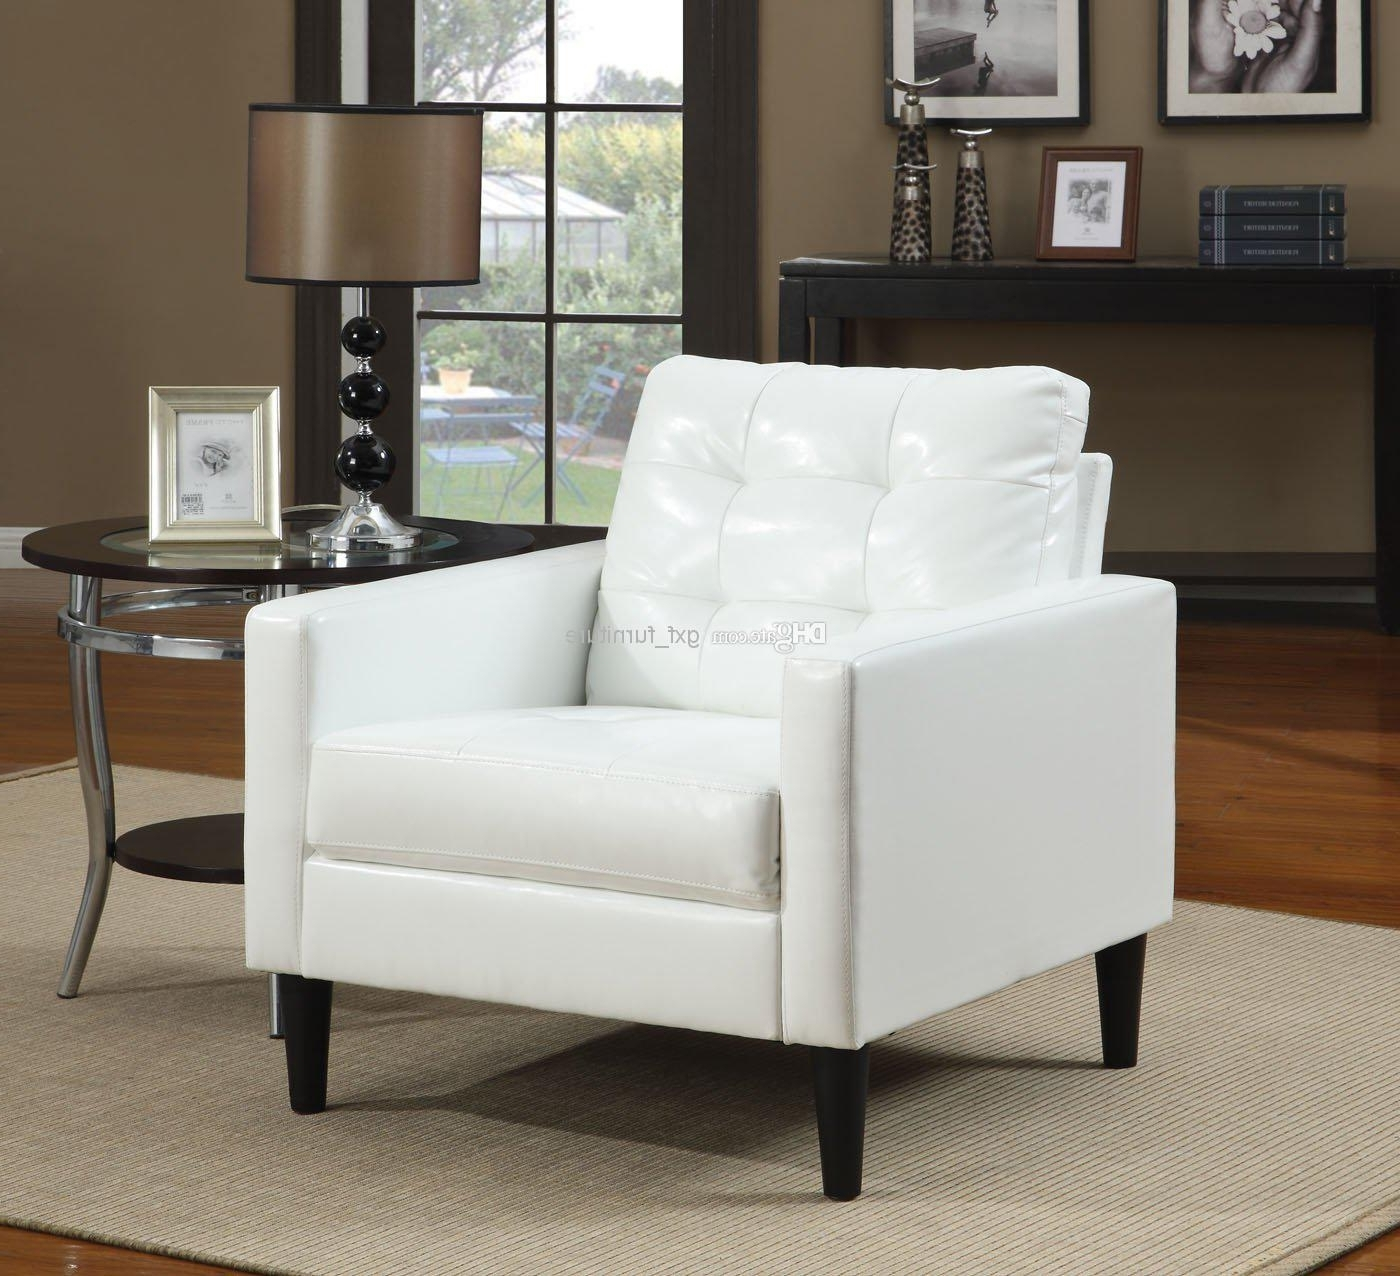 Living Room Sofa Chairs Inside Widely Used Sofa Chairs For Living Room New At Cool Sofas And Set Sets With (View 11 of 20)